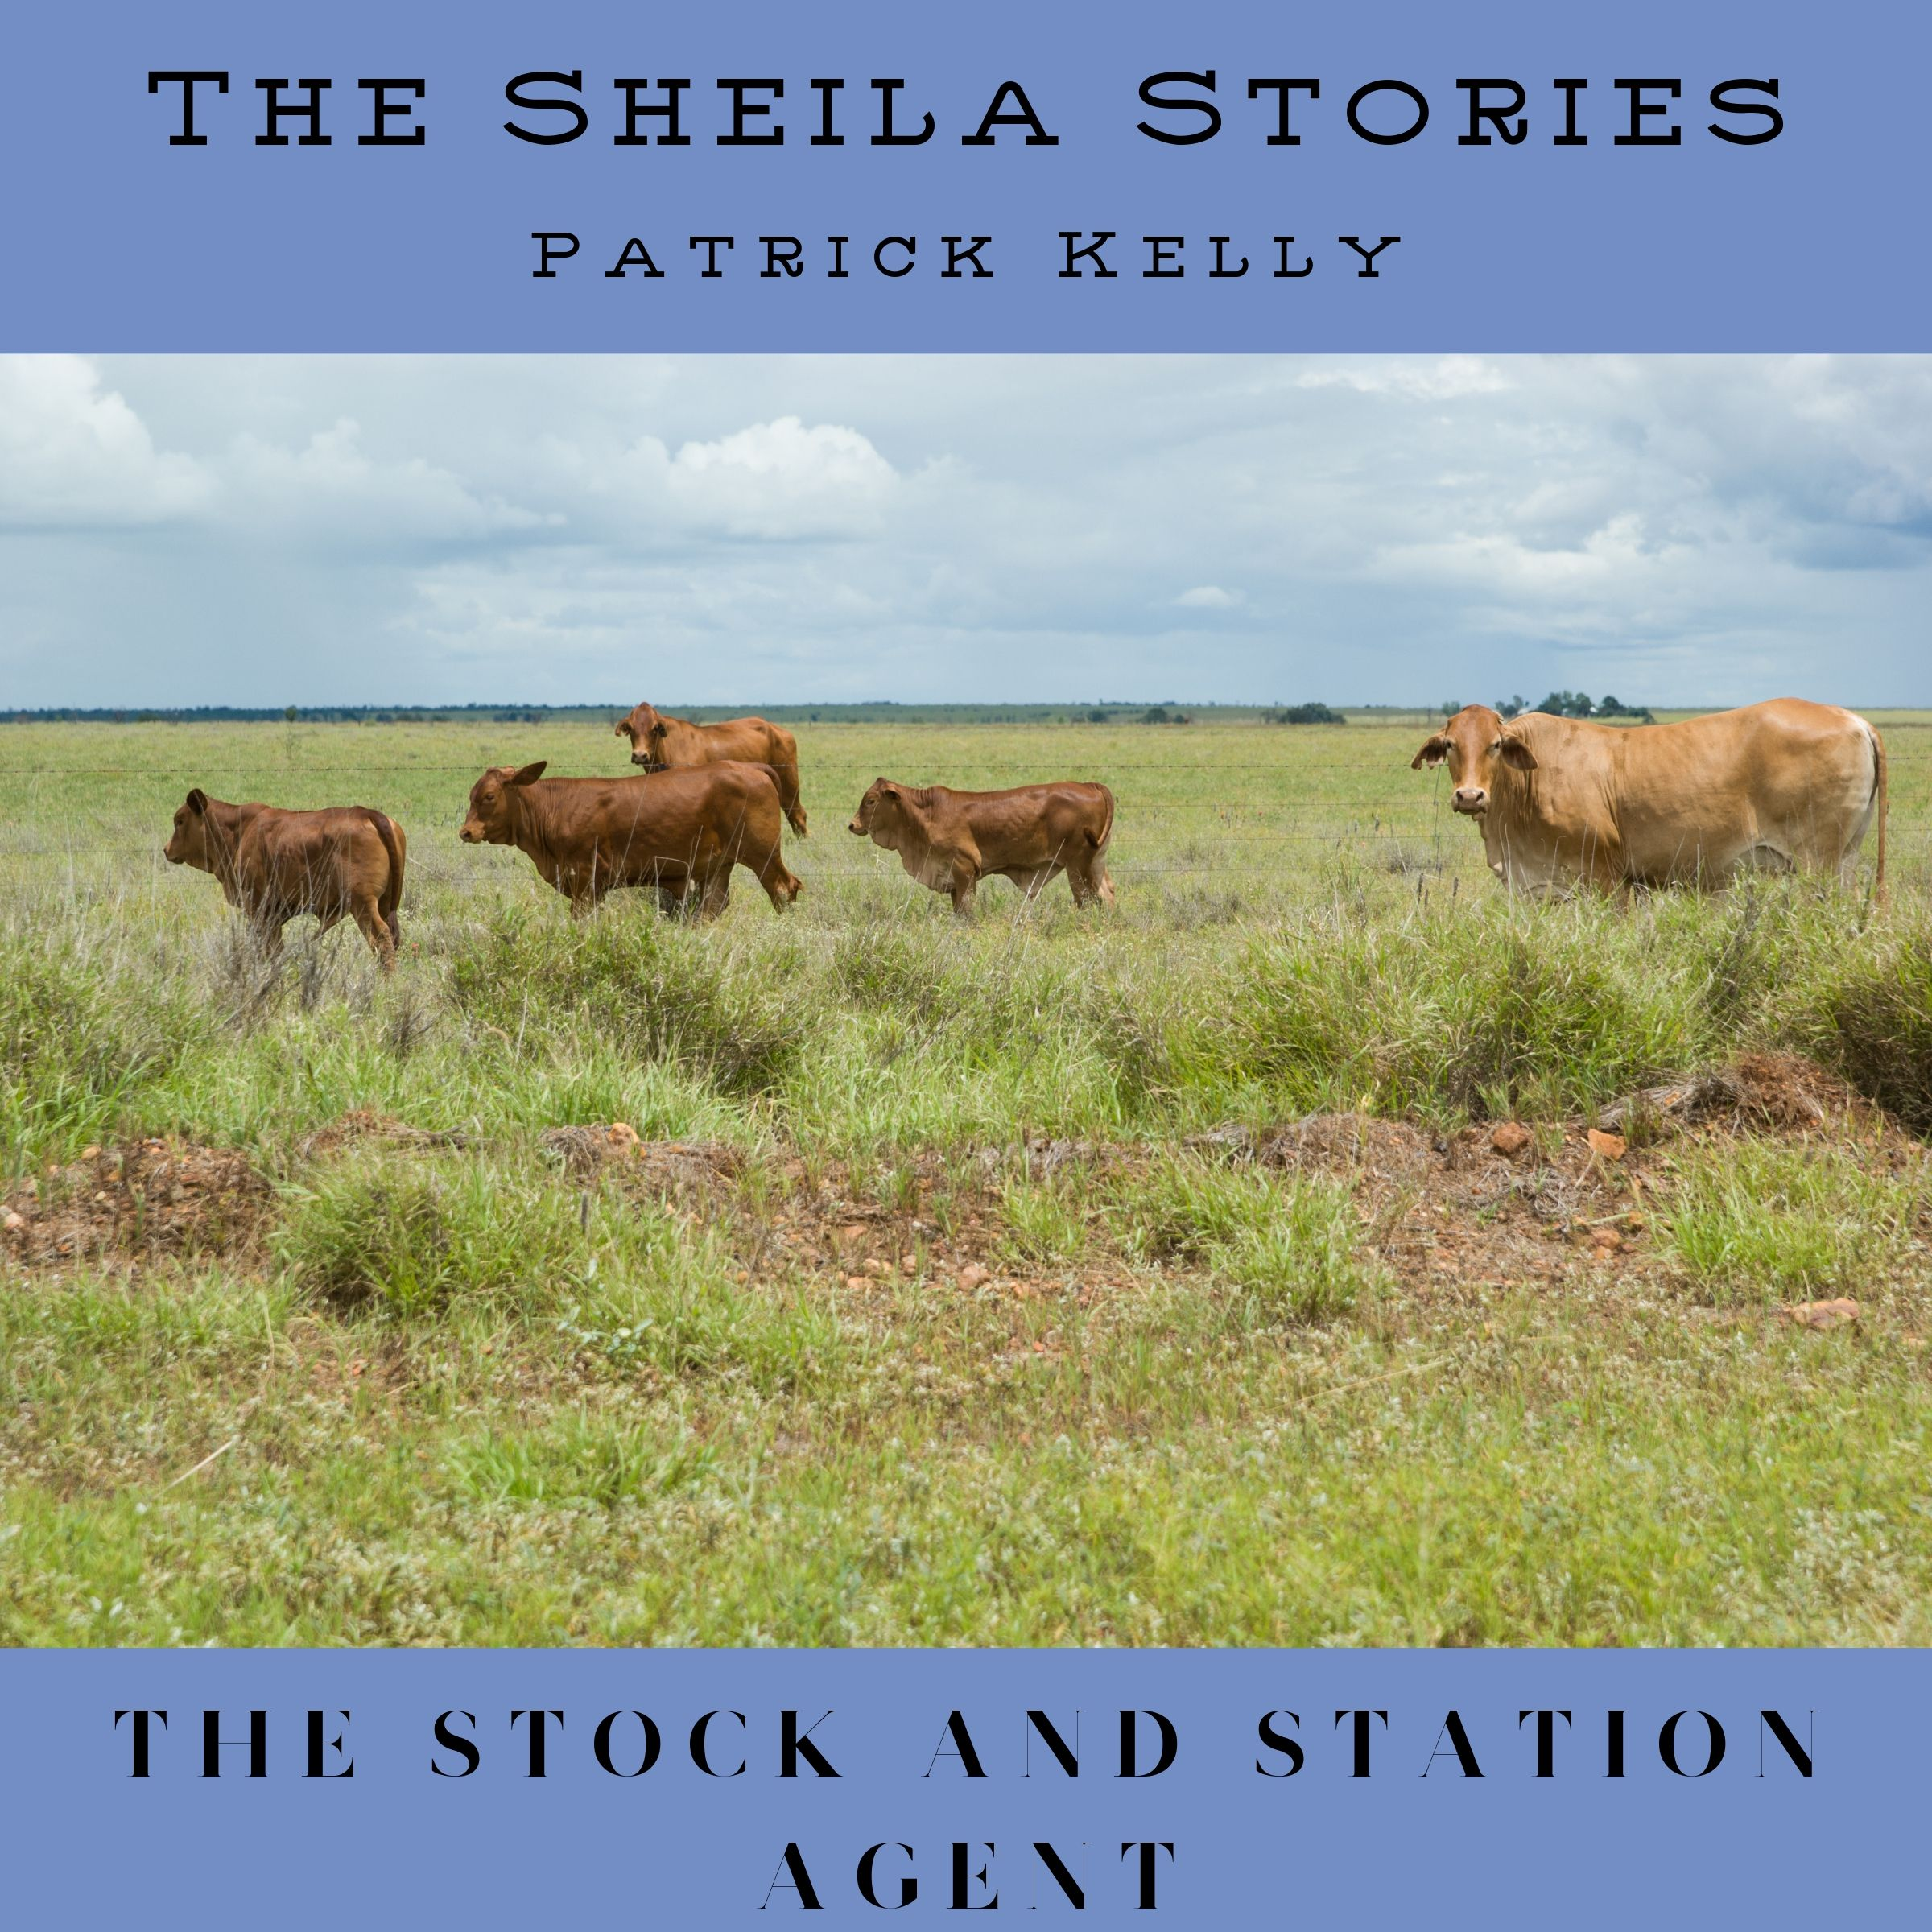 SS Cover EP04 The Stock and Station Agent small.jpg